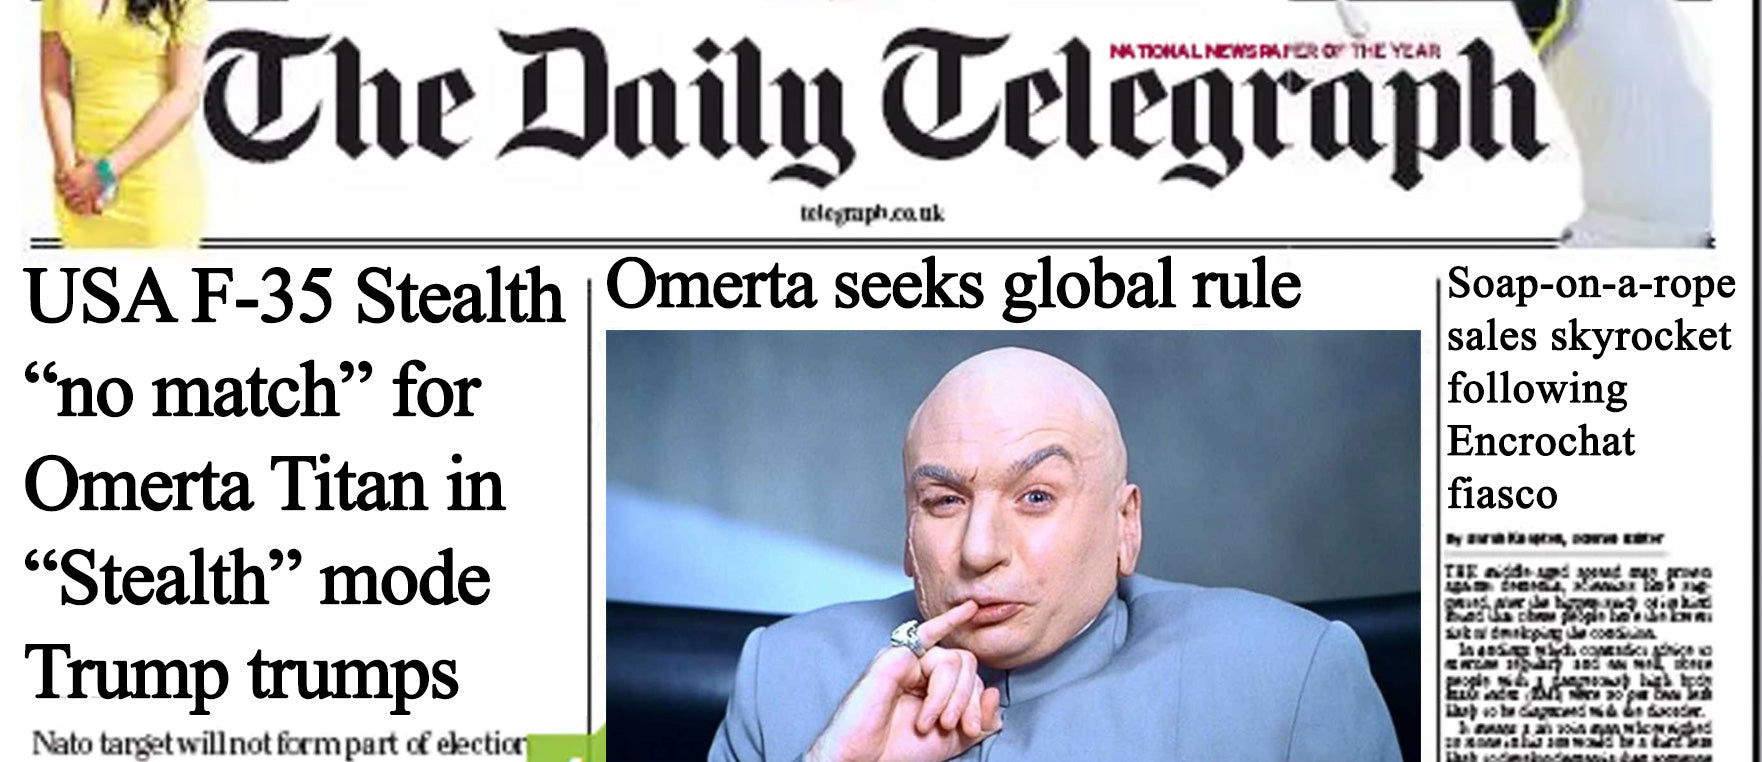 Omerta interviewed  by the Daily Telegraph following Encrochat drama